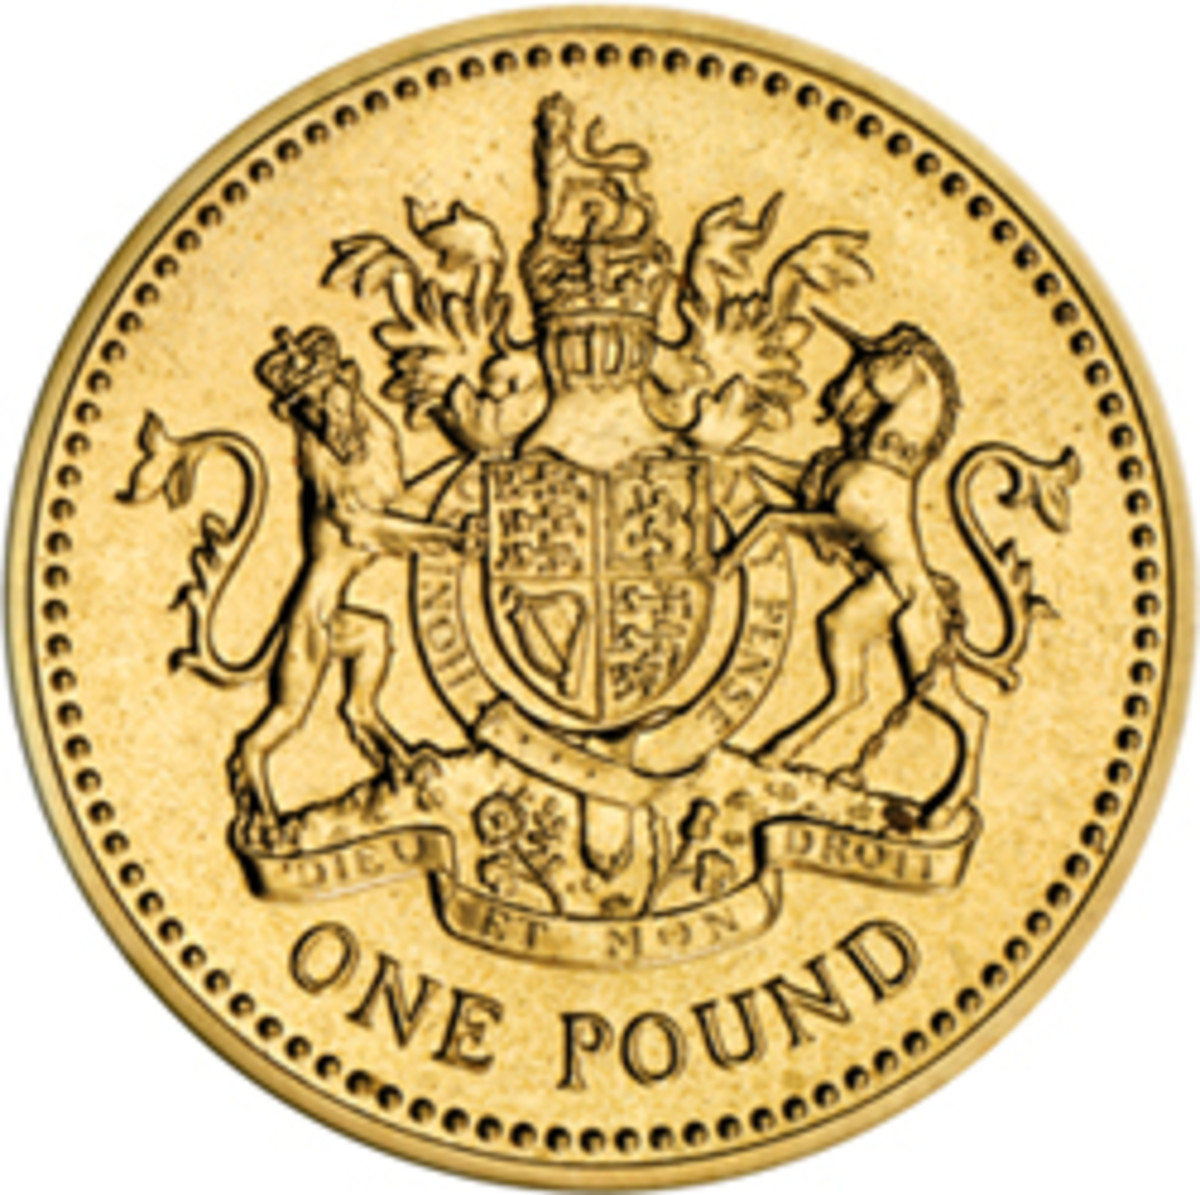 At the end of May 1999, the pound was worth about $1.61 US. Today the pound is worth just under $1.31 US.